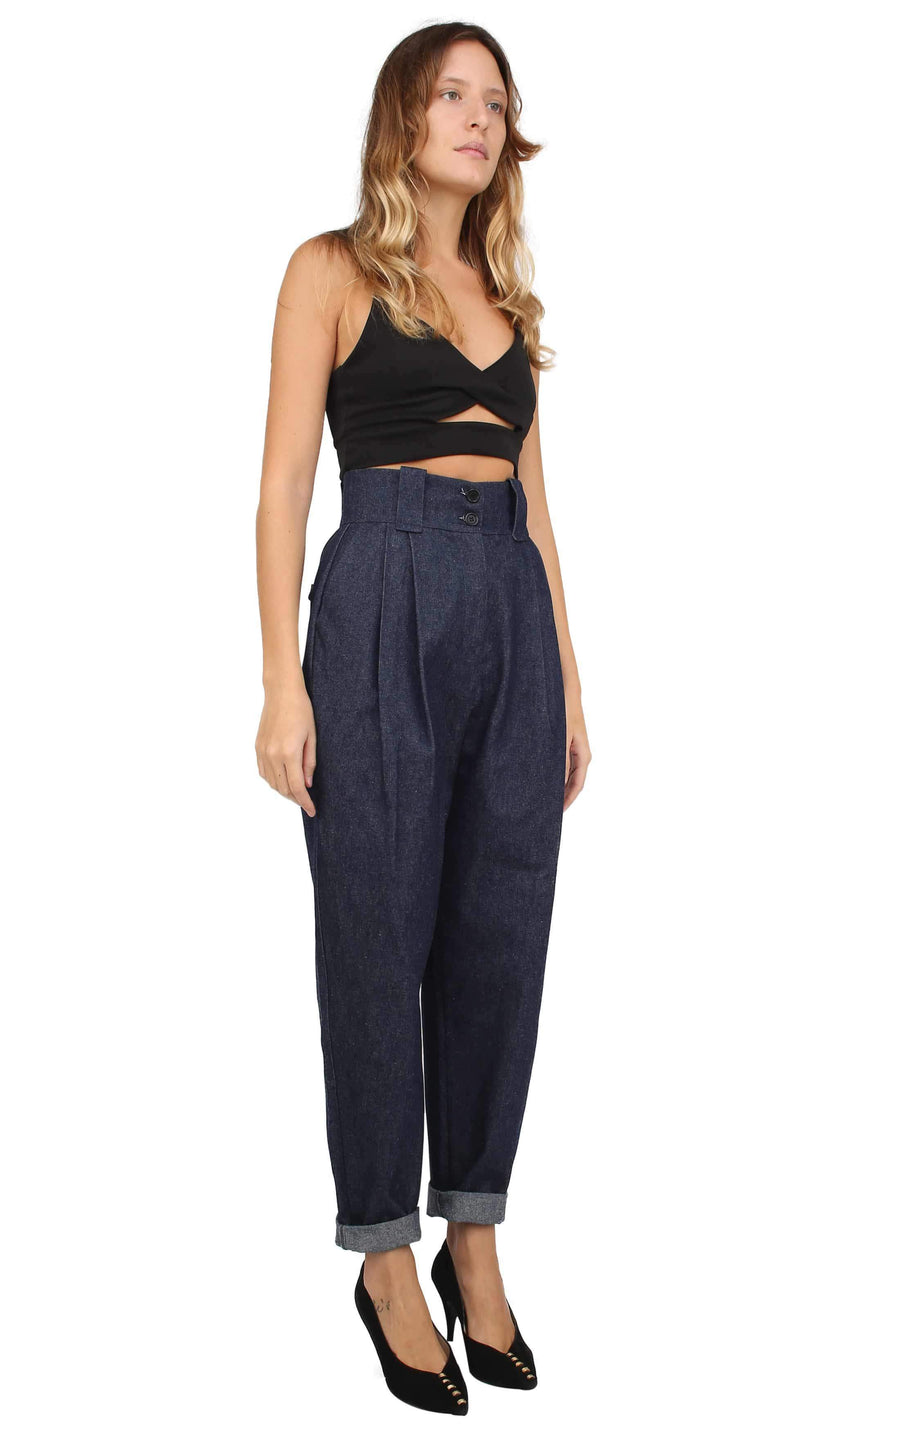 Souldaze Collection Pants & shorts Gilda pants in denim sustainable fashion ethical fashion